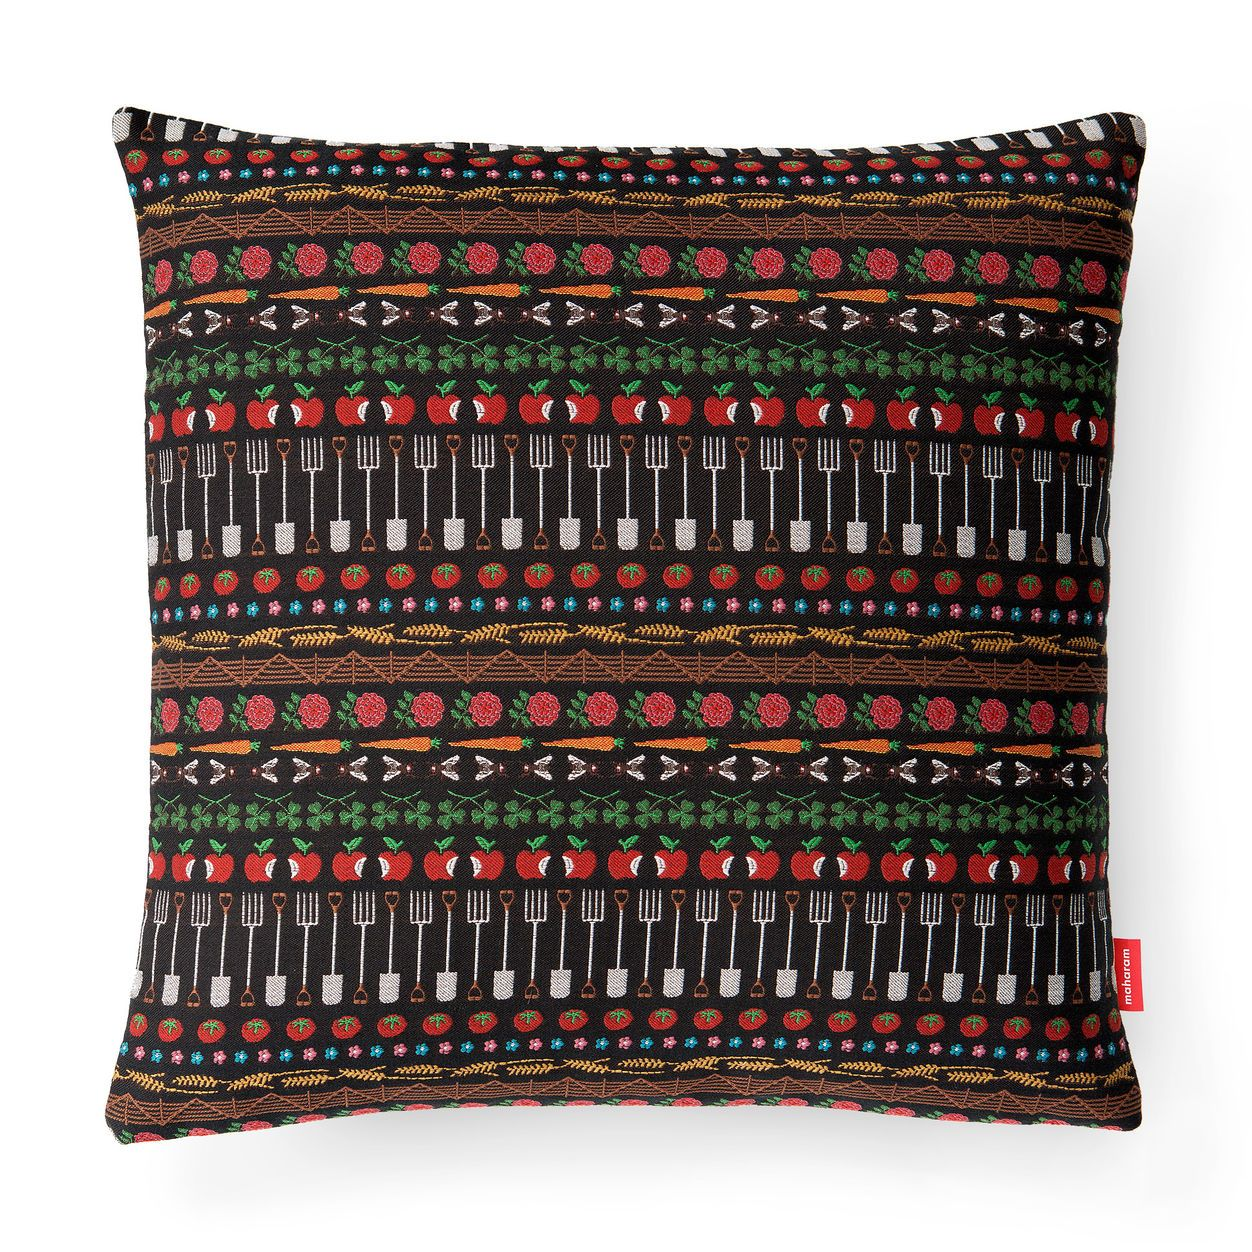 Bavaria stripe pillow in color accessories pillows and throws